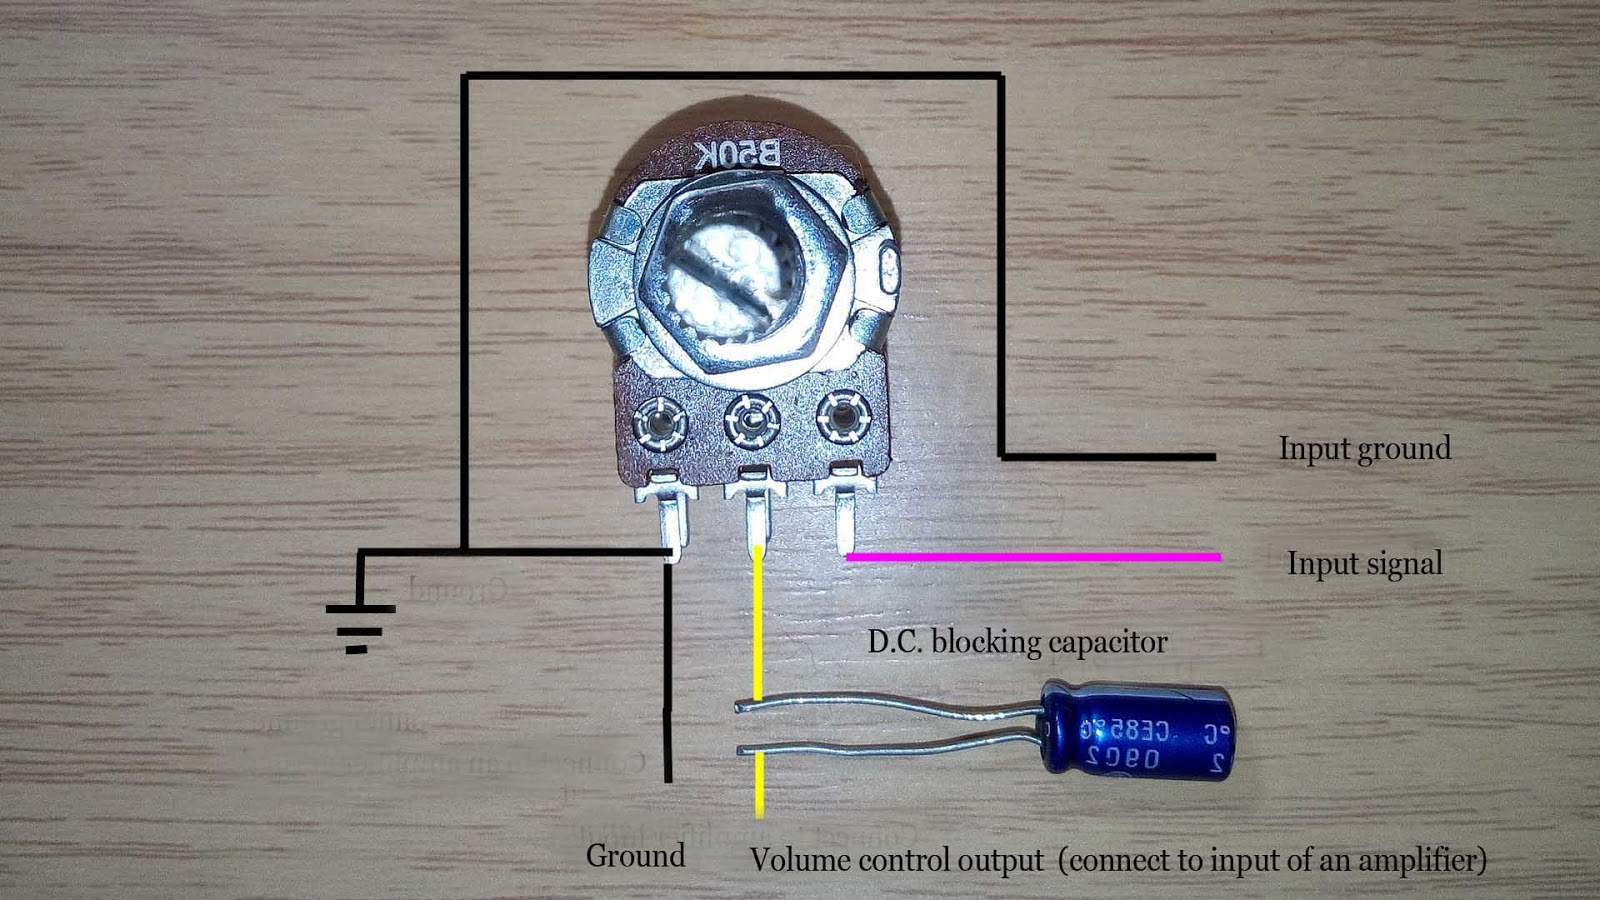 Volume Control Wiring Diagram Schematics Of Electronic Clock How To Connect An Amplifier Midi Pinout